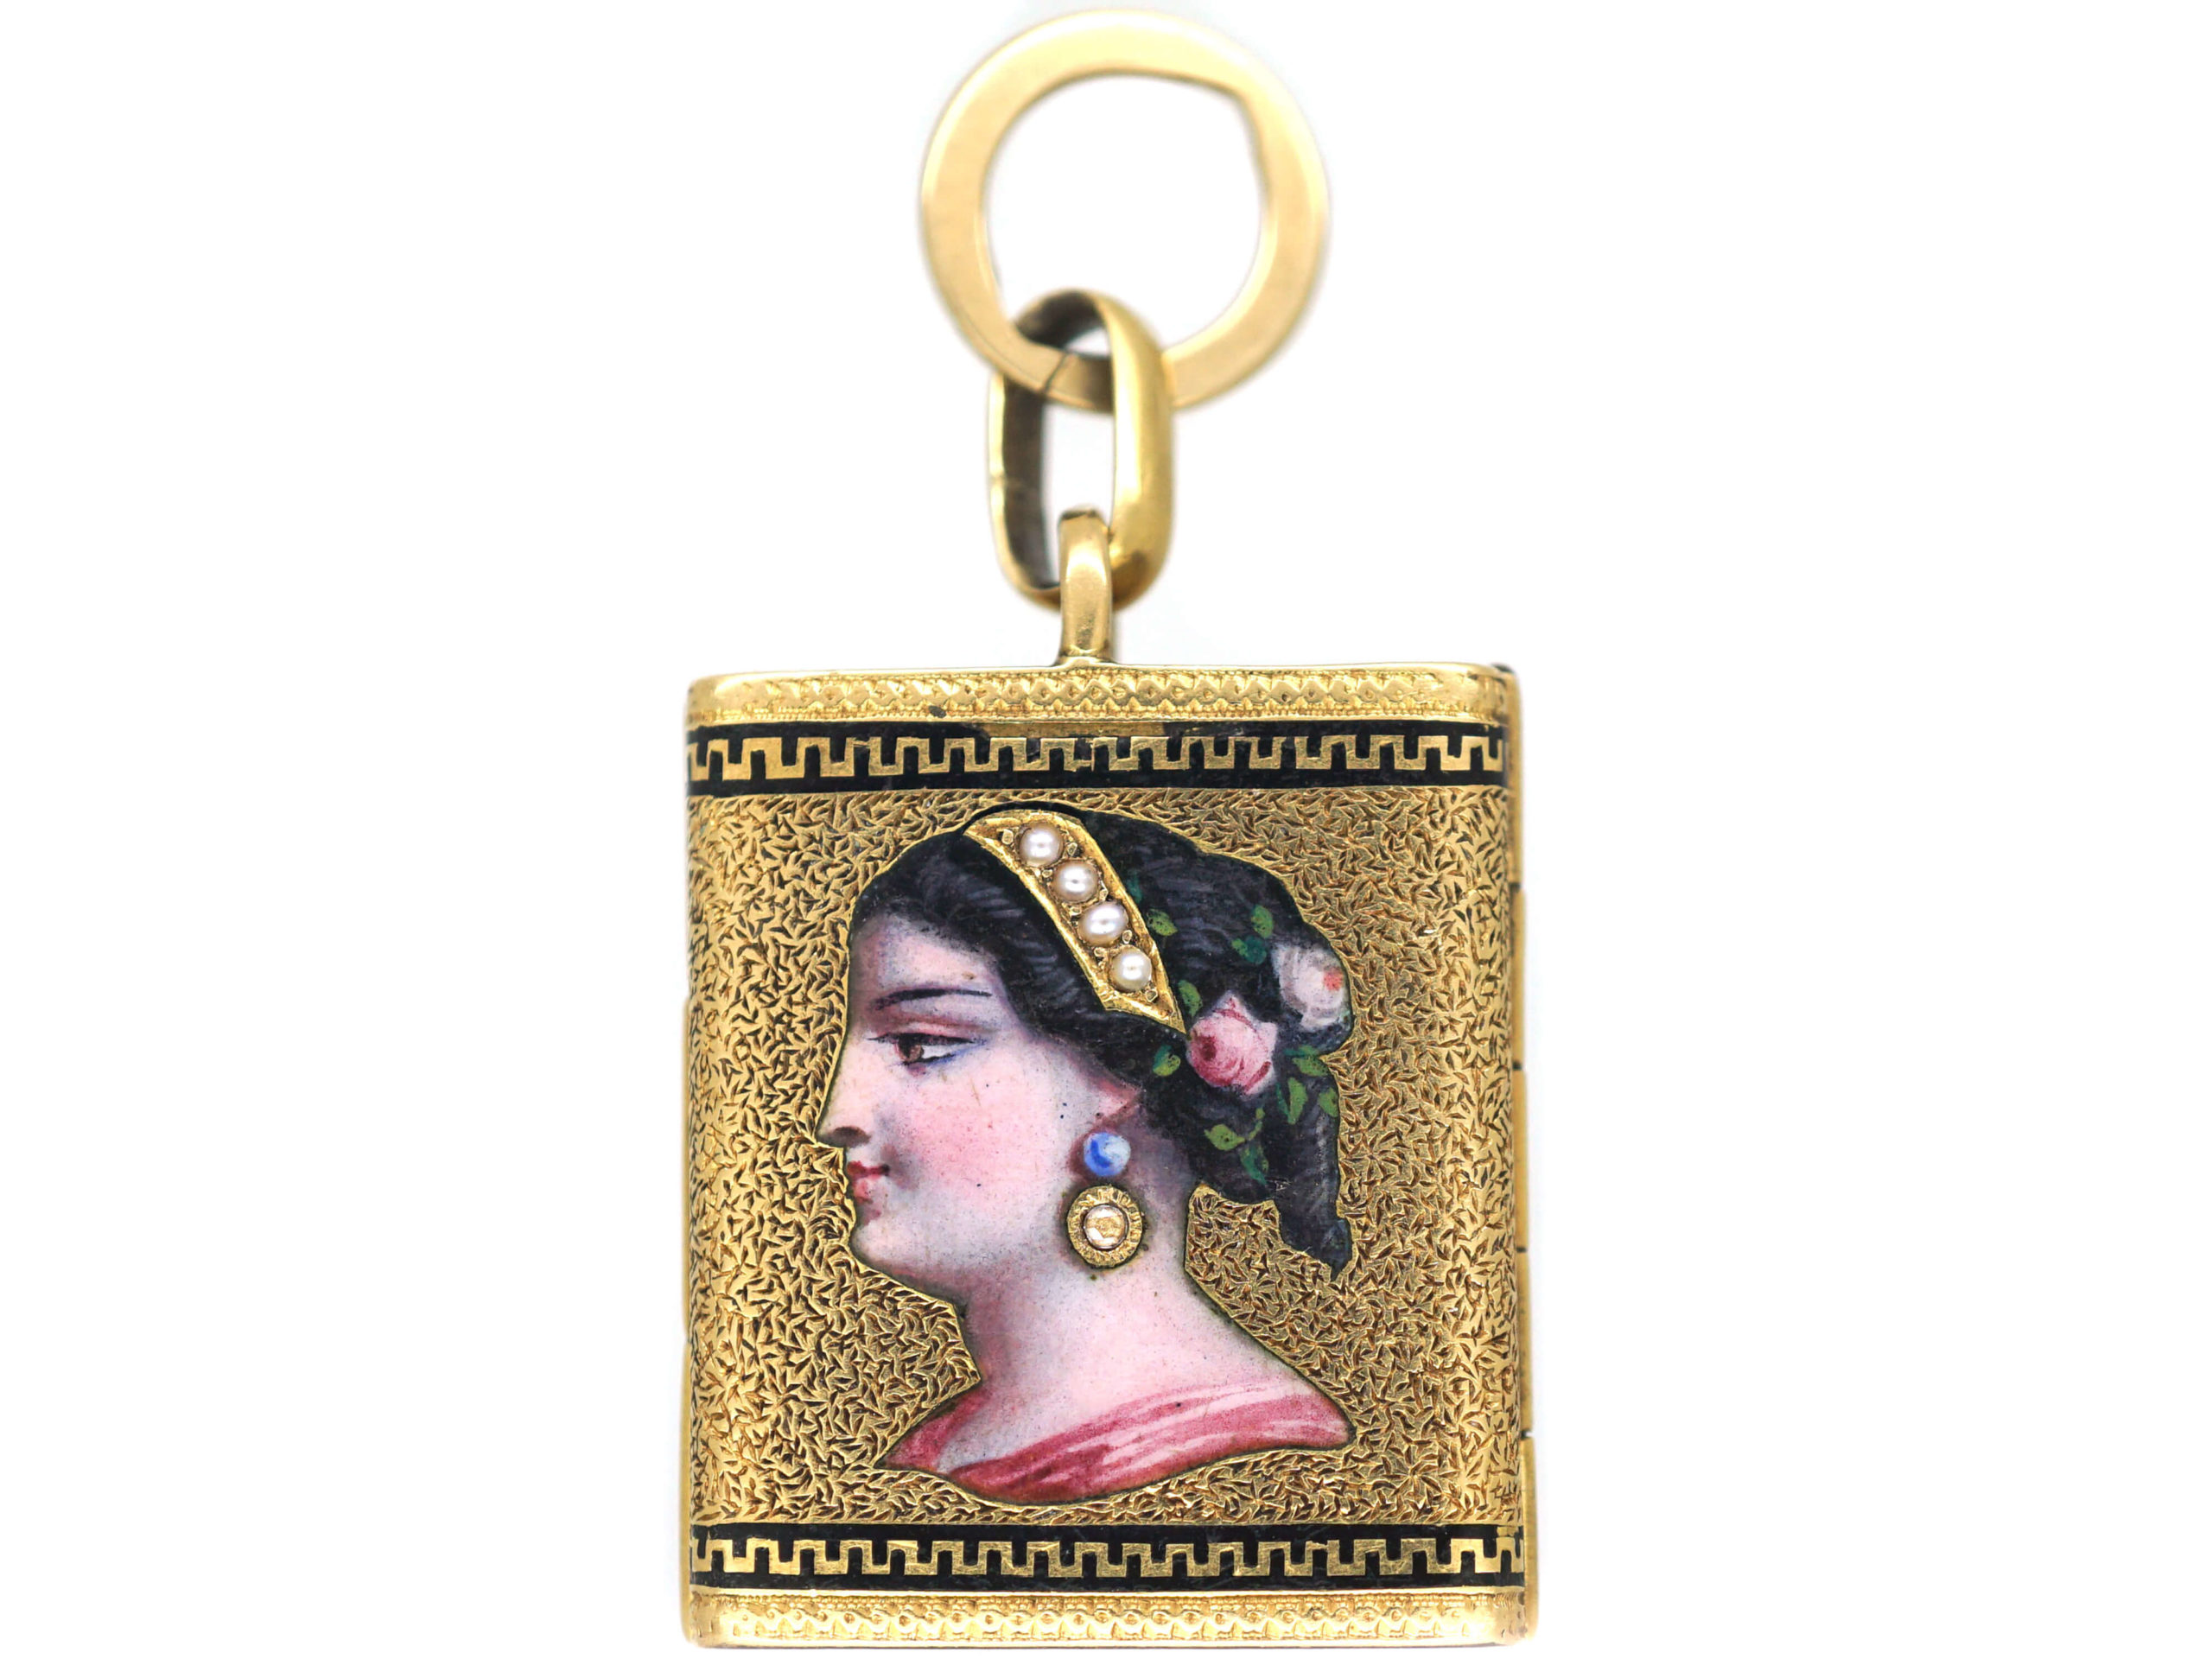 Victorian 18ct Gold Envelope Locket with Enamelled Lady & Eight Locket Compartments Inside